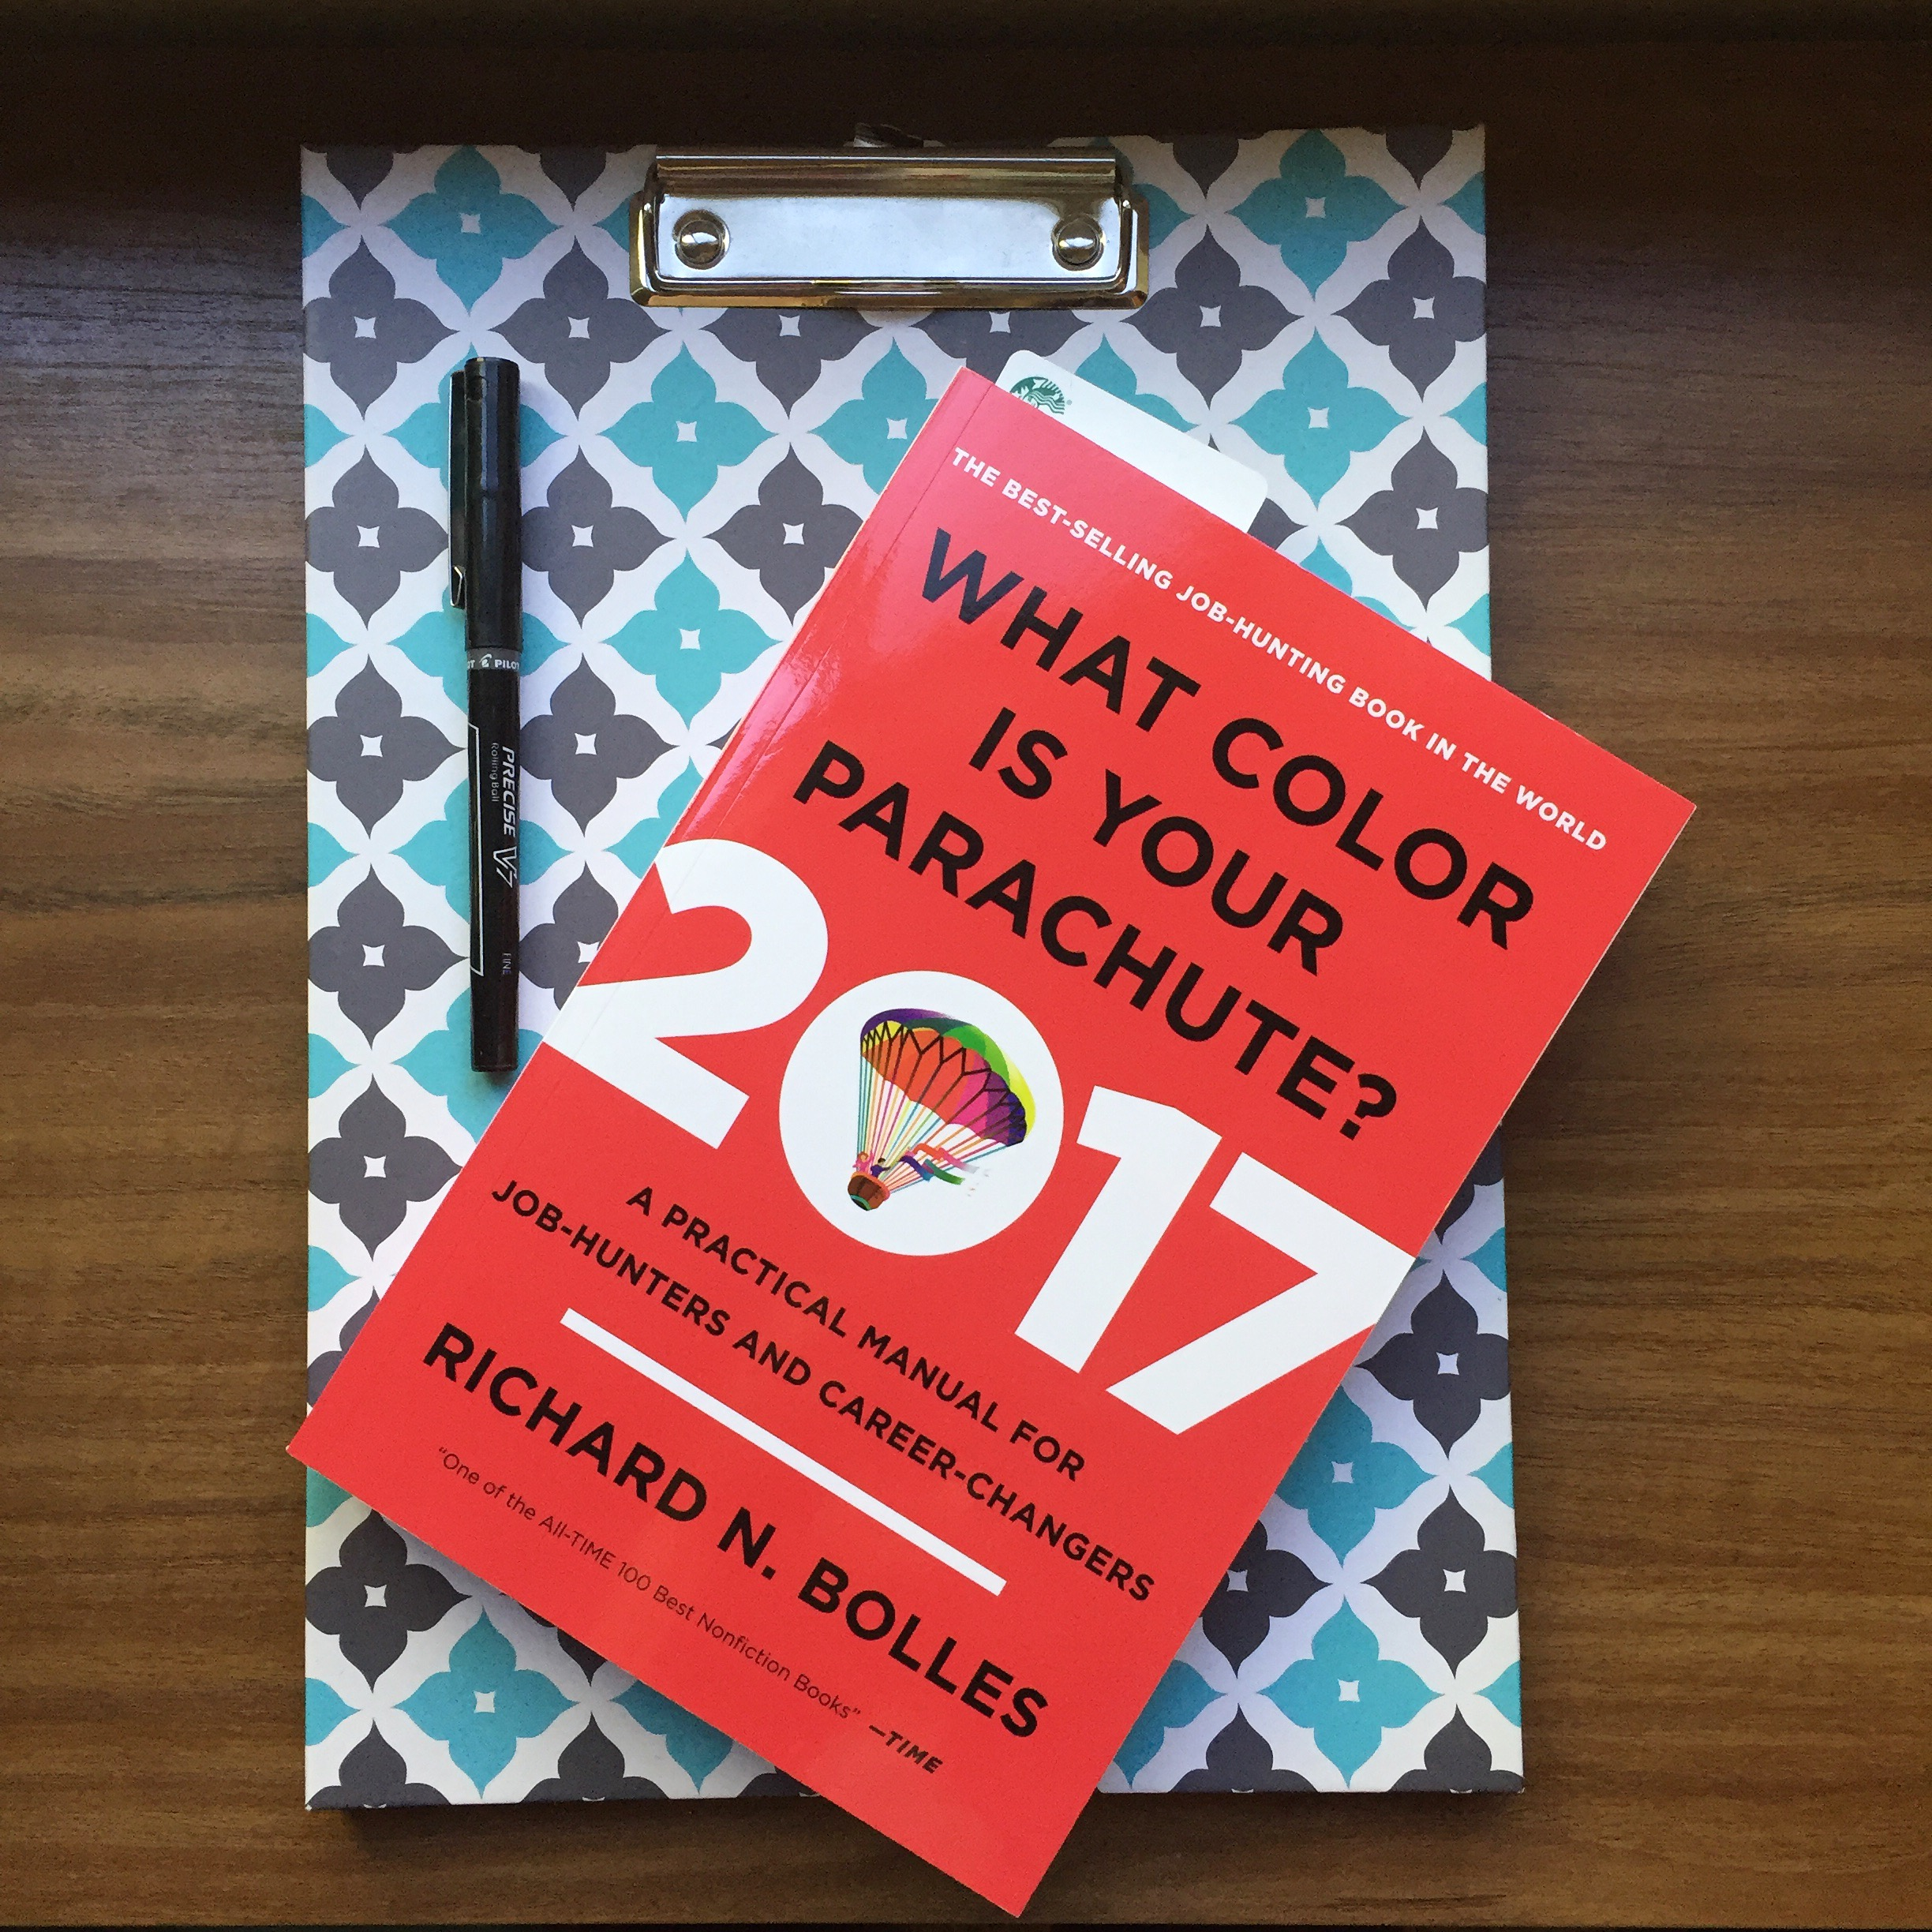 Finished Reading: What Color is your Parachute? 2017